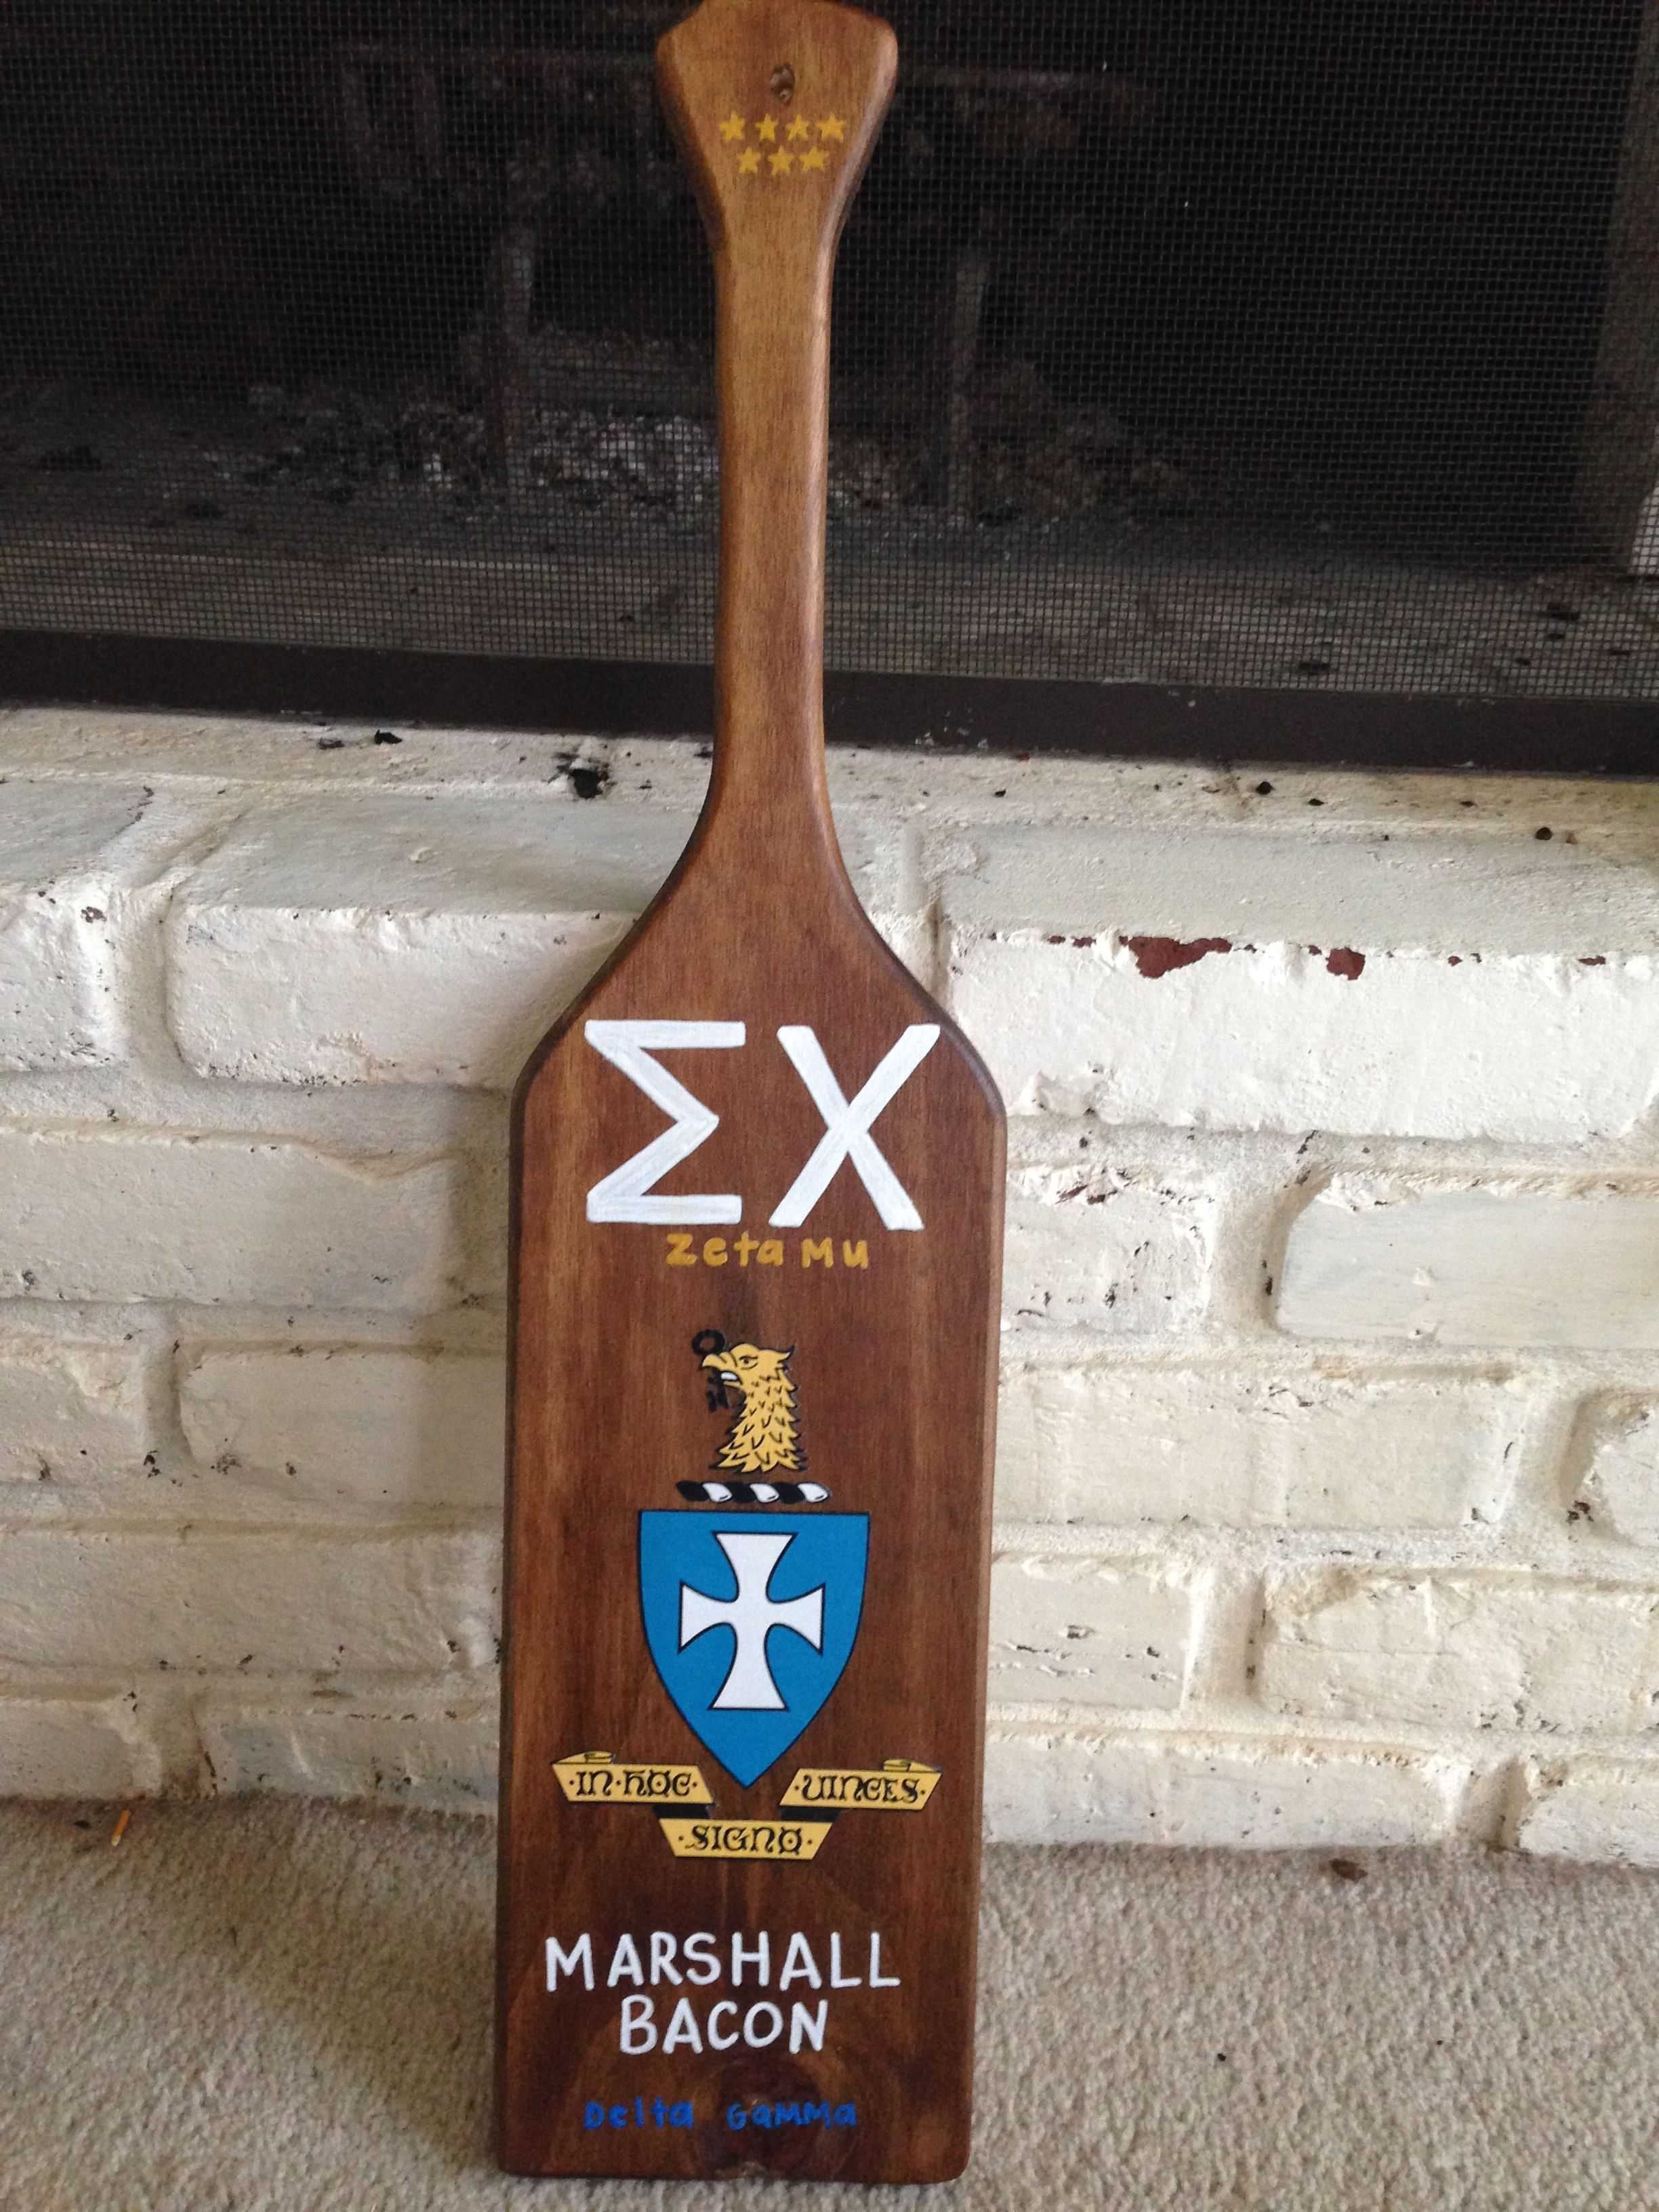 Fuck the sigma chi apologise, but